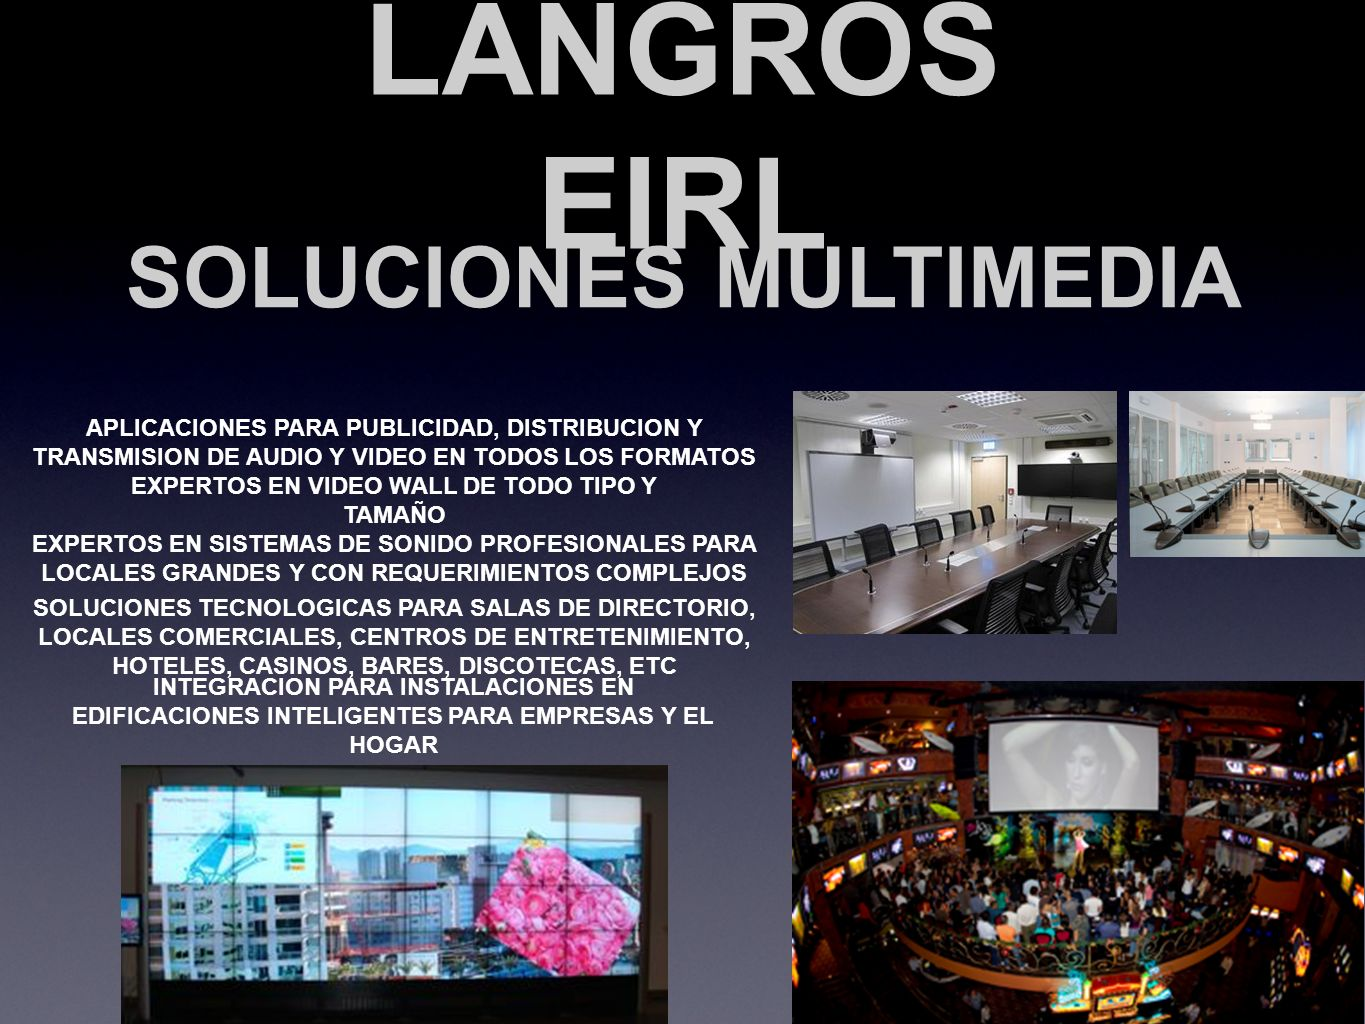 SOLUCIONES MULTIMEDIA EXPERTOS EN VIDEO WALL DE TODO TIPO Y TAMAÑO